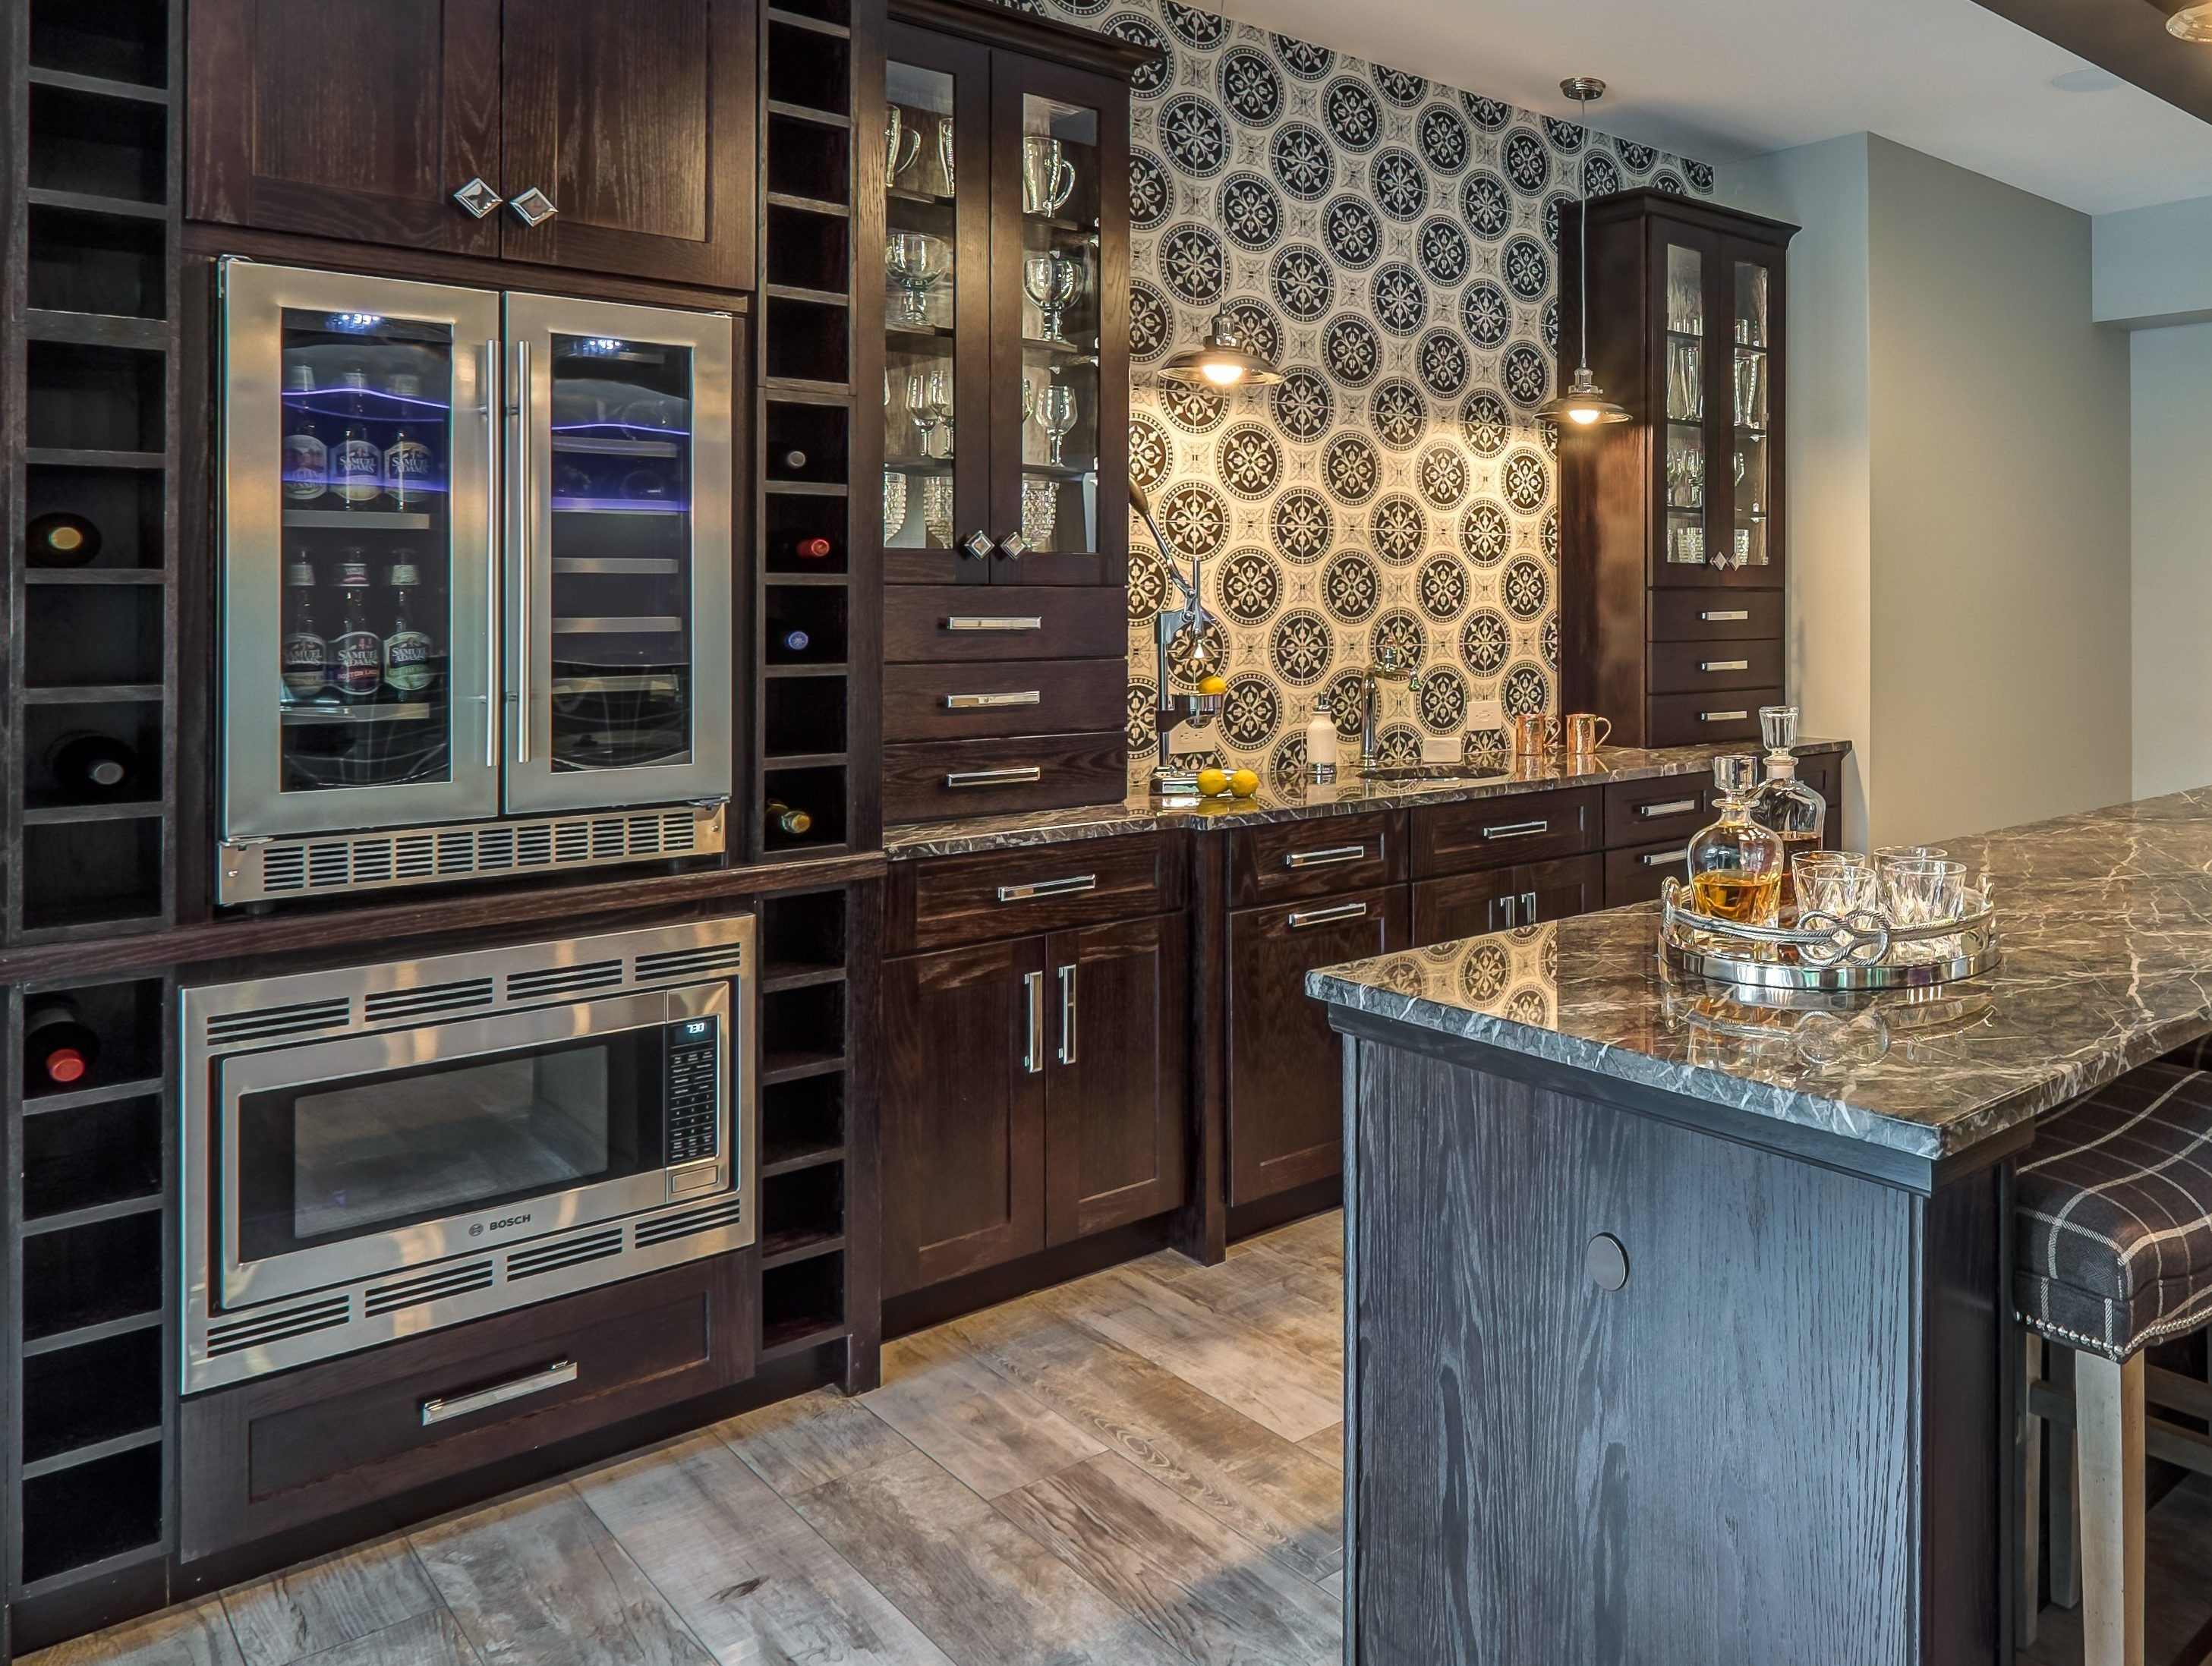 The cabinets here look so great. Maybe it would be good to ...